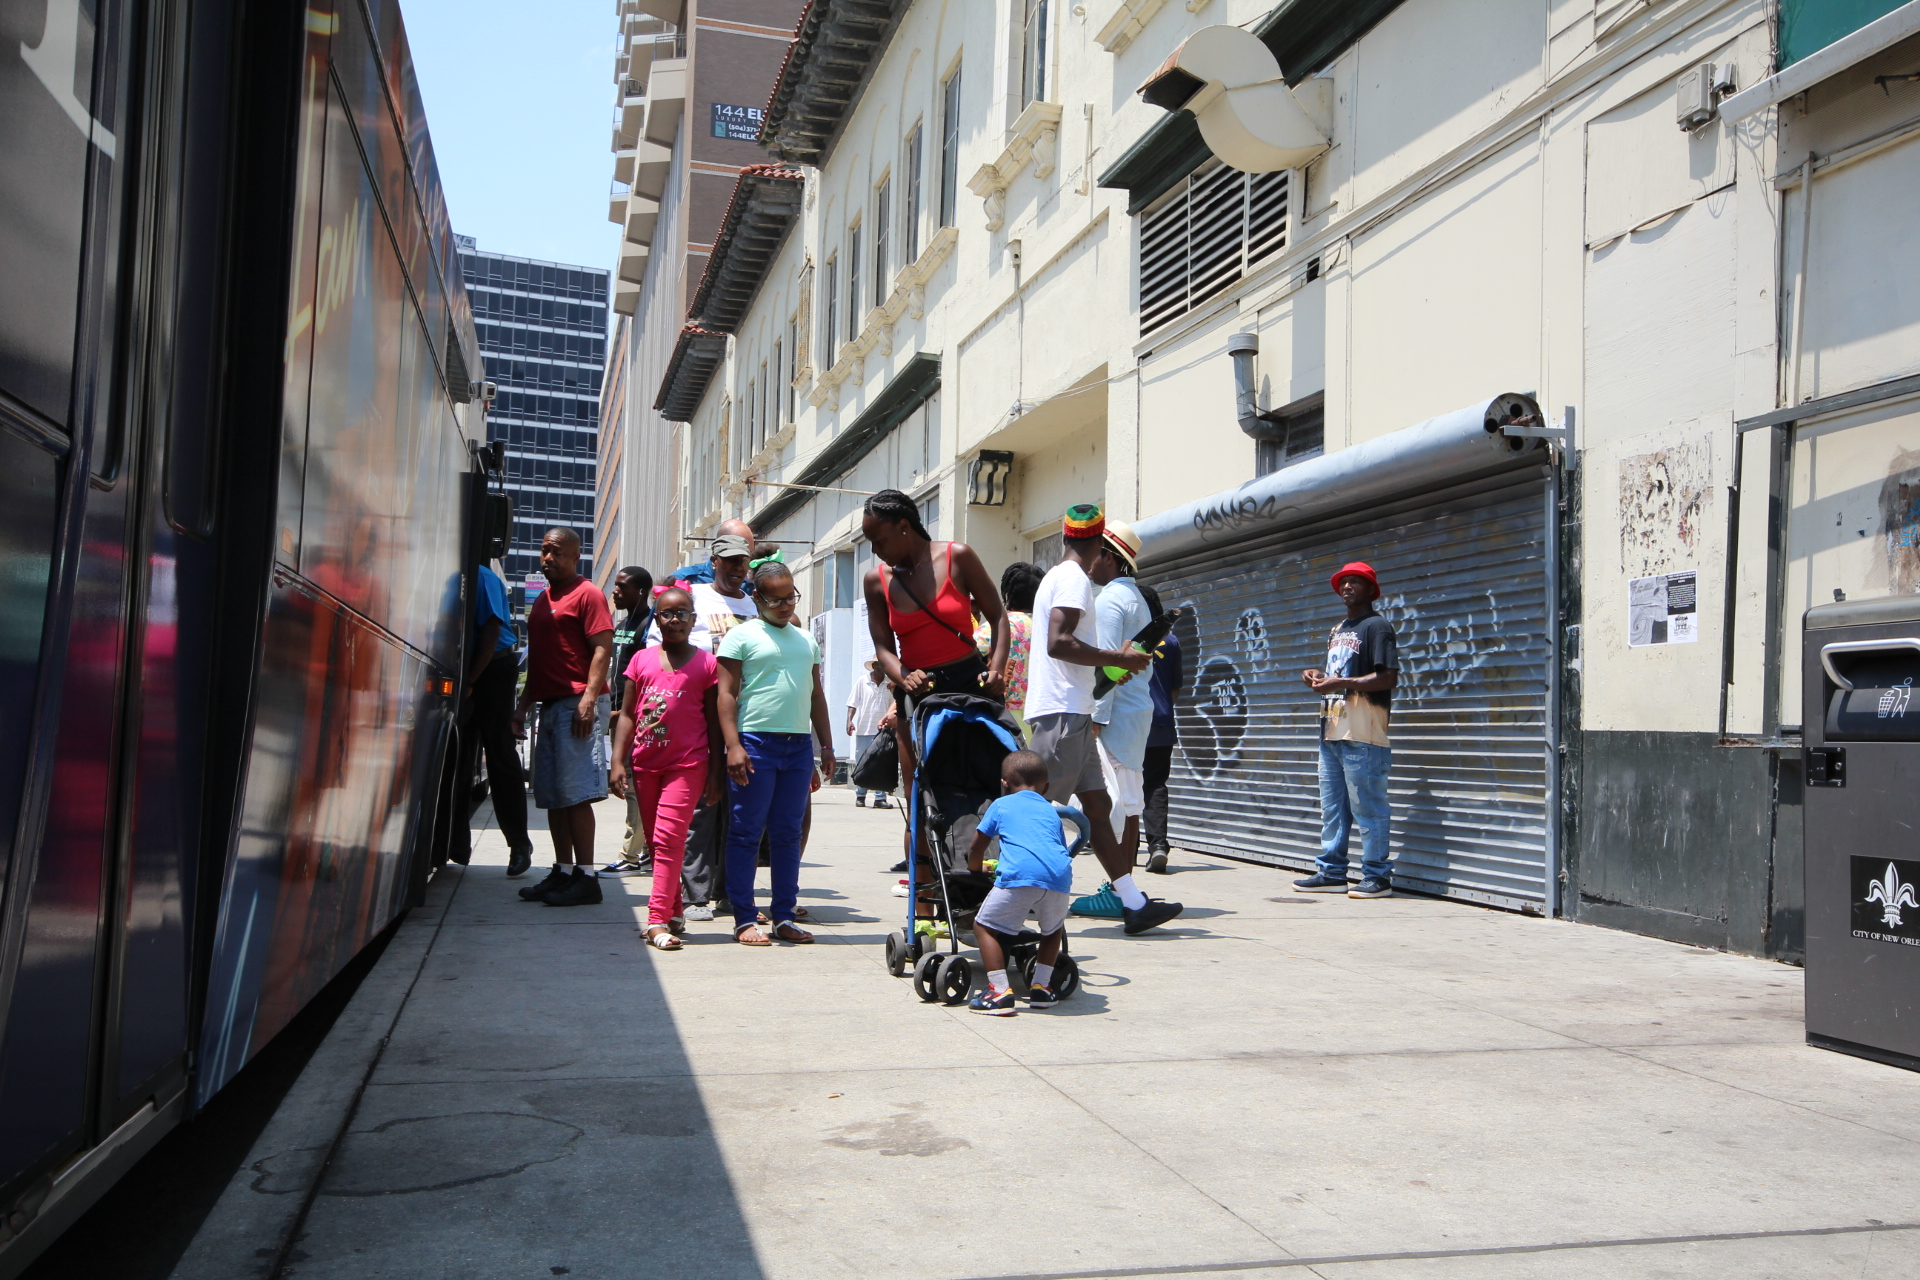 Riders exit a bus adjacent to the Rampart Street site.